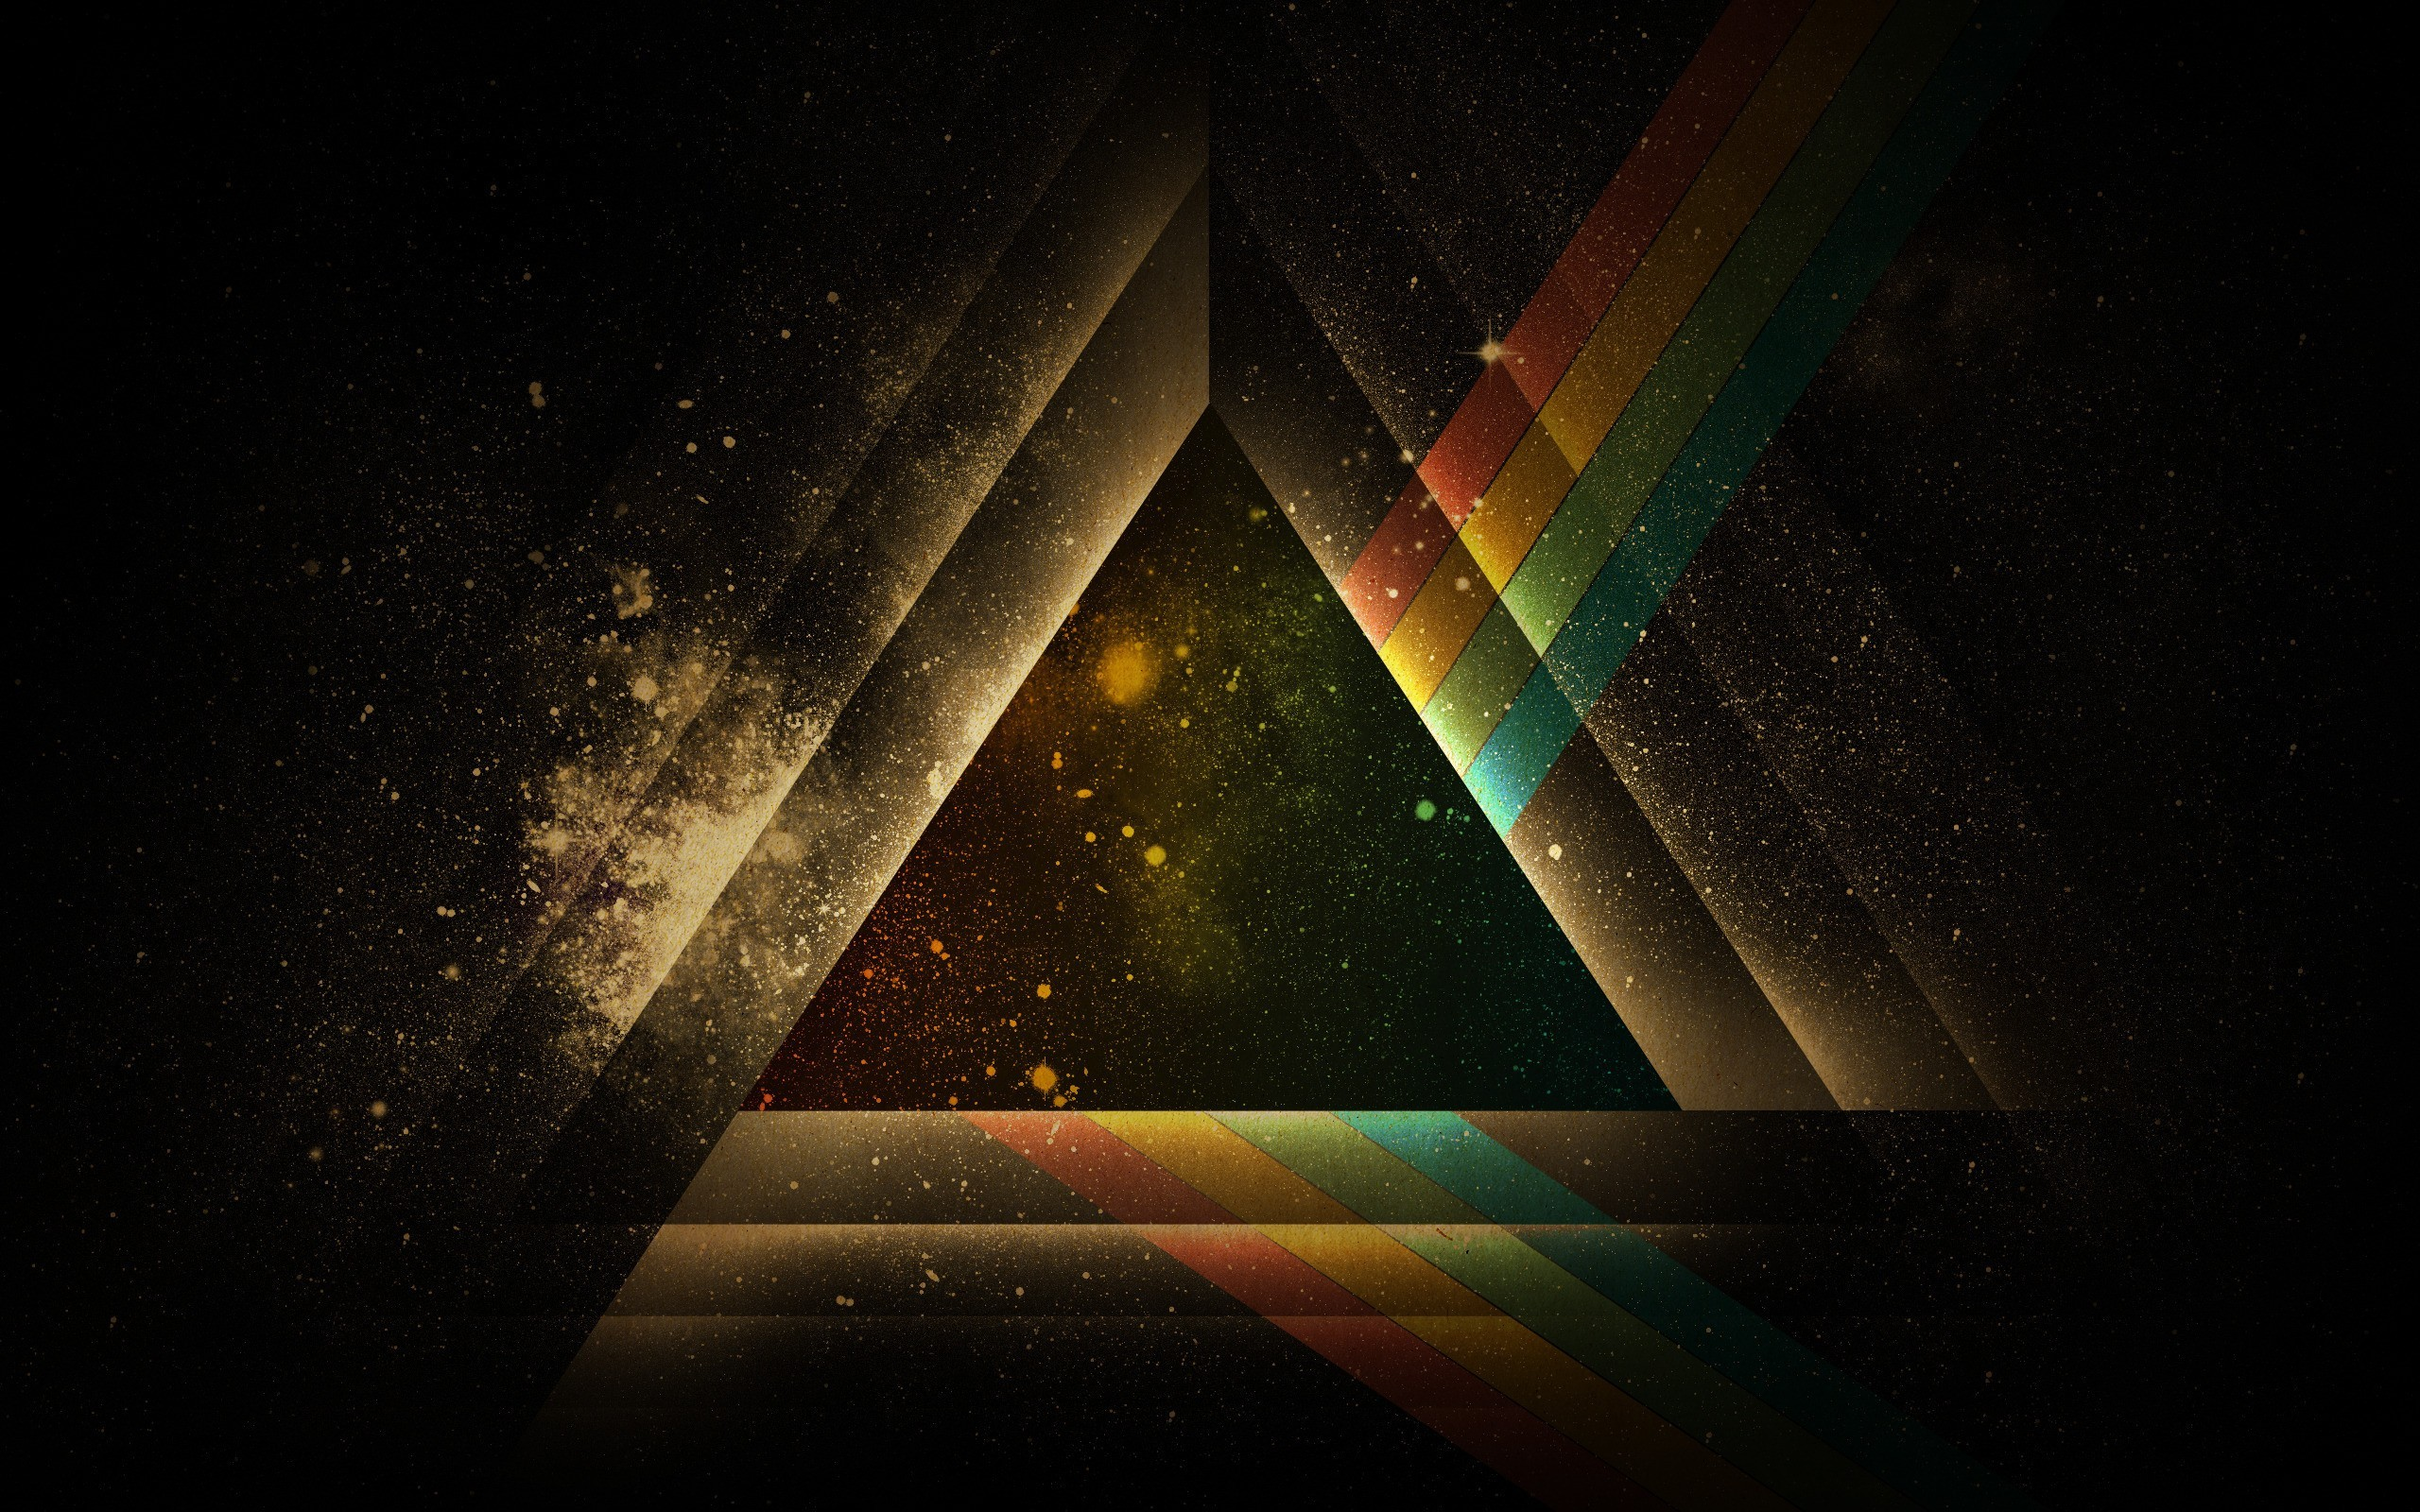 Pink Floyd Abstract Wallpaper 54021 2560x1600px On Wallls